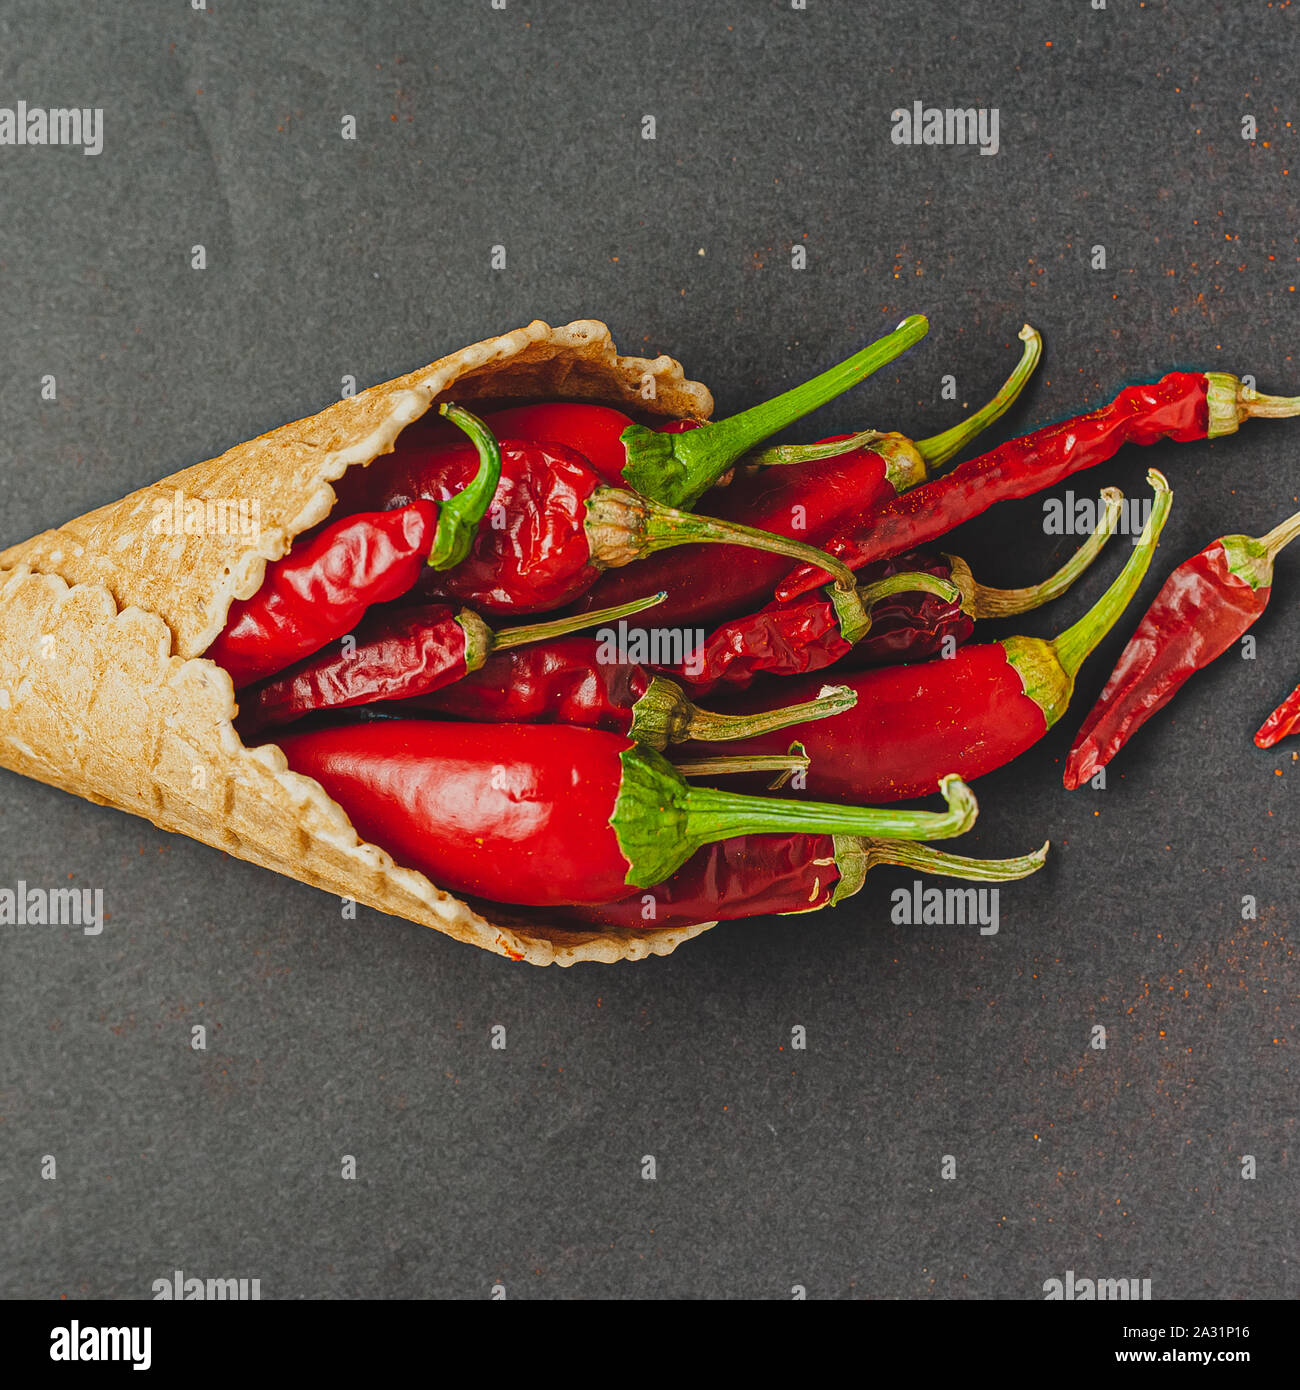 Bunch of red pepper. Stock Photo